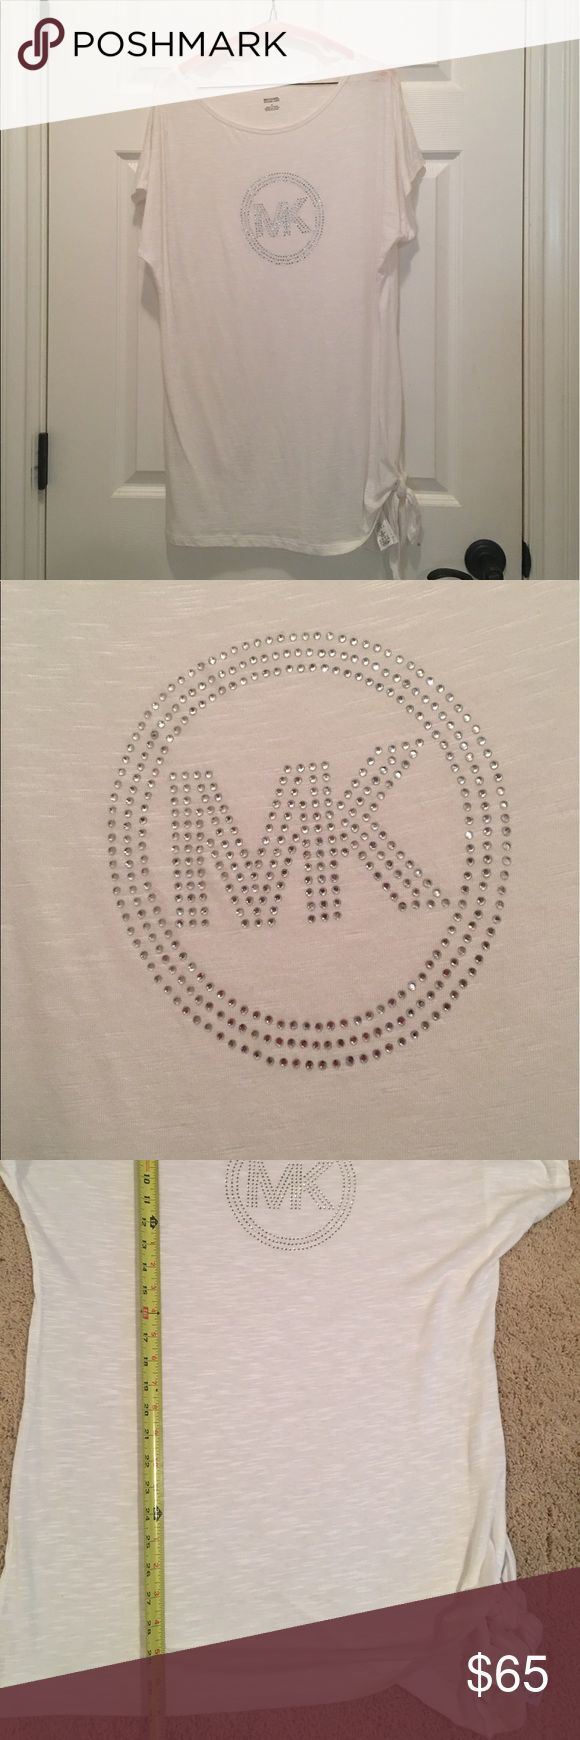 Michael Kors rhinestone t shirt white medium Michael Kors medium white cover up or t shirt. This would be fabulous with leggings or a cover up at the pool. 31 inches long with a cute tie knot at the side. 21 inches from under arm to arm. The Rhinestone MK is 6 inches side to side. MICHAEL Michael Kors Tops Tees - Short Sleeve